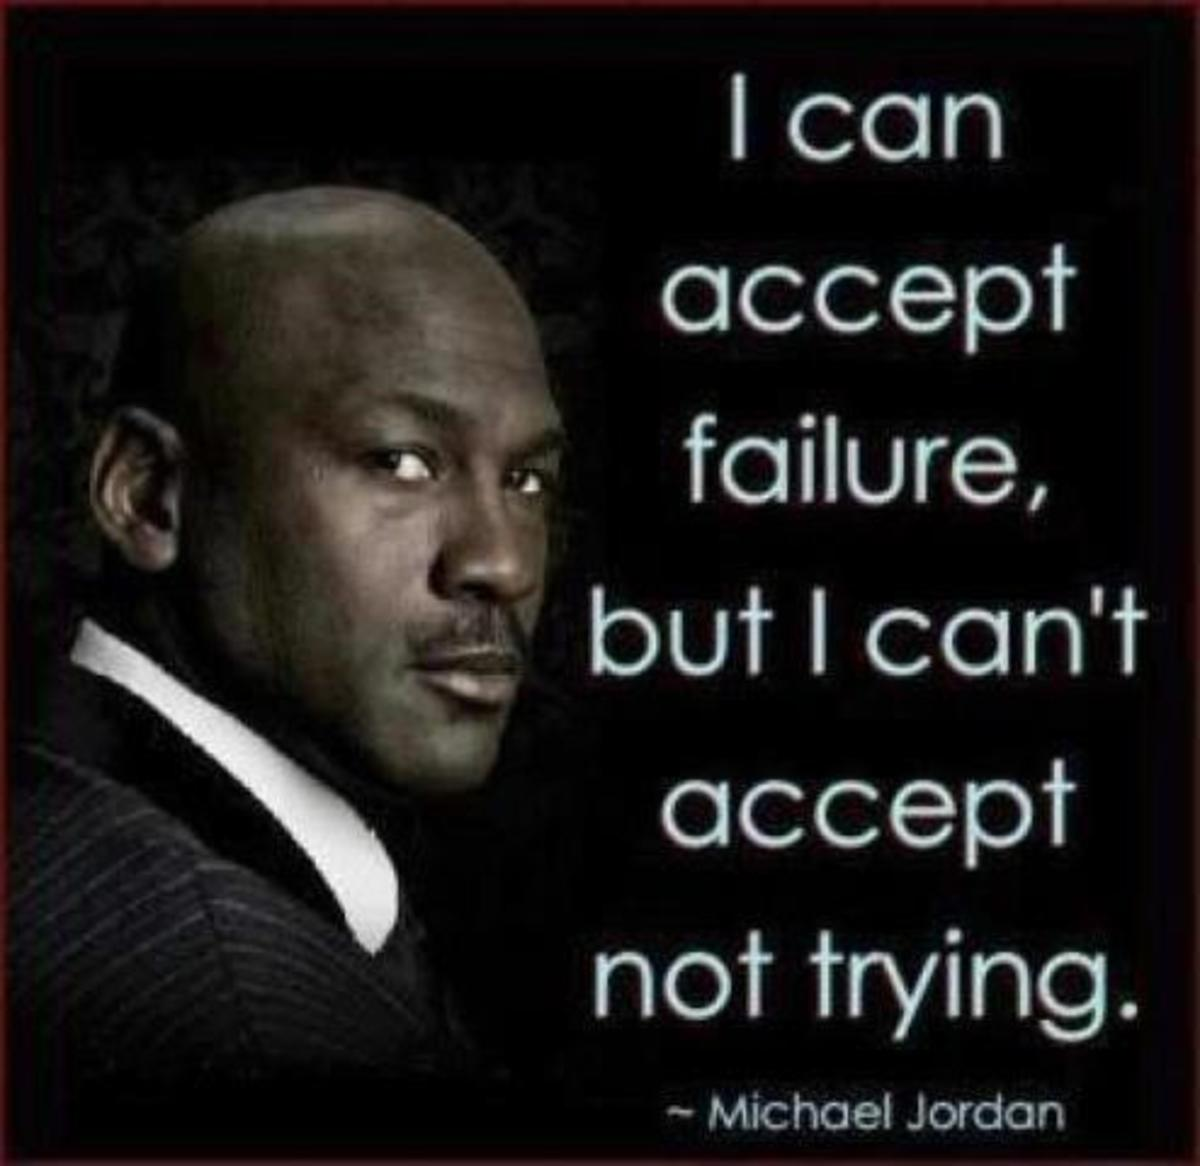 When the going gets rough, and grades are looking tough, just keep putting one foot in front of the other!  Change what isn't working, but never give up!